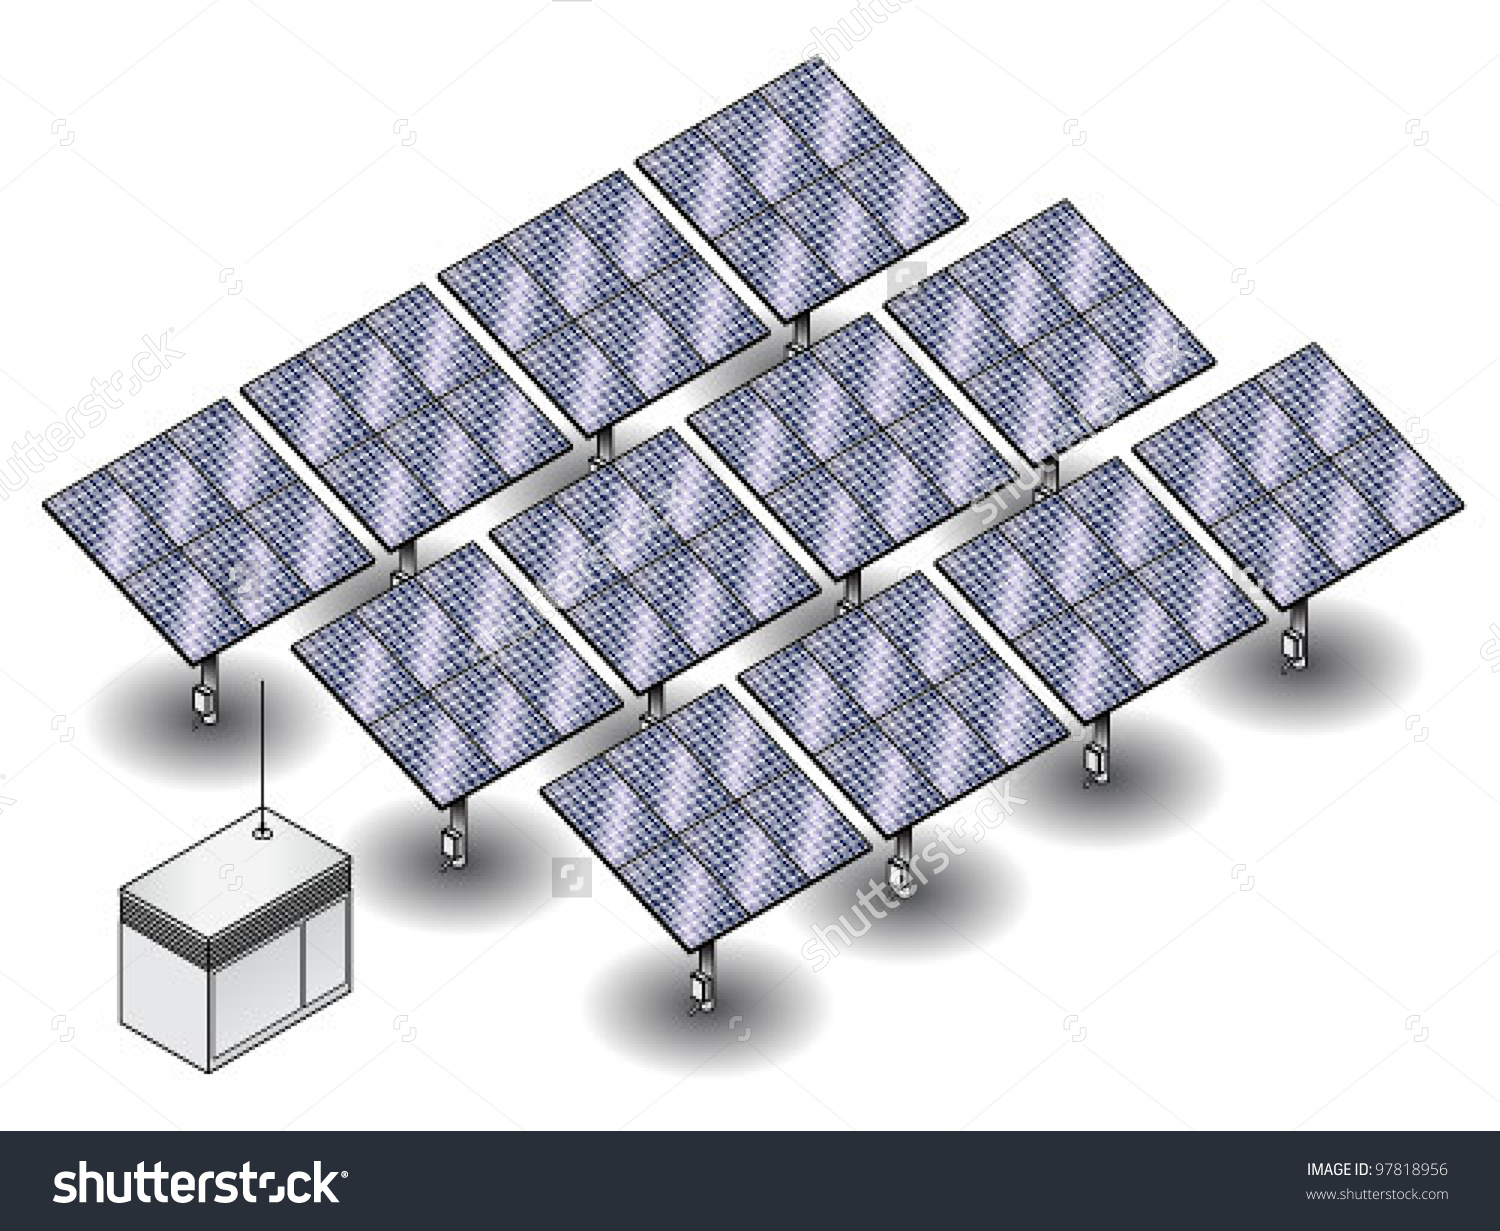 Photovoltaic Wiring Diagram Meter likewise Index as well PV Cable together with Solar Power System moreover Solar Power Systems. on solar panel junction box